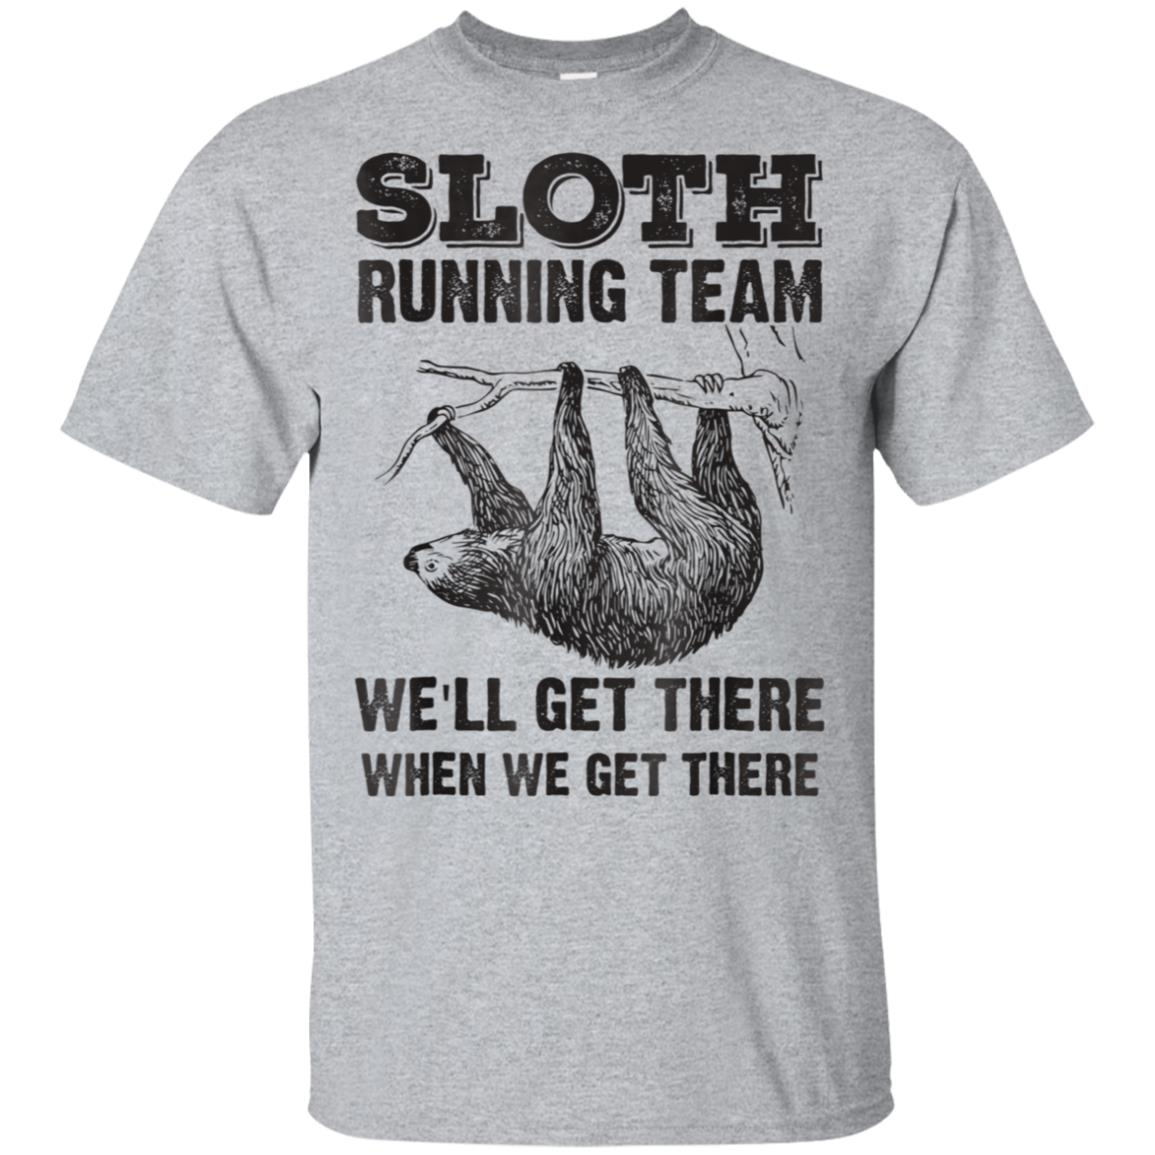 Sloth Running Team We'll Get There When We Get There T-Shirt 99promocode